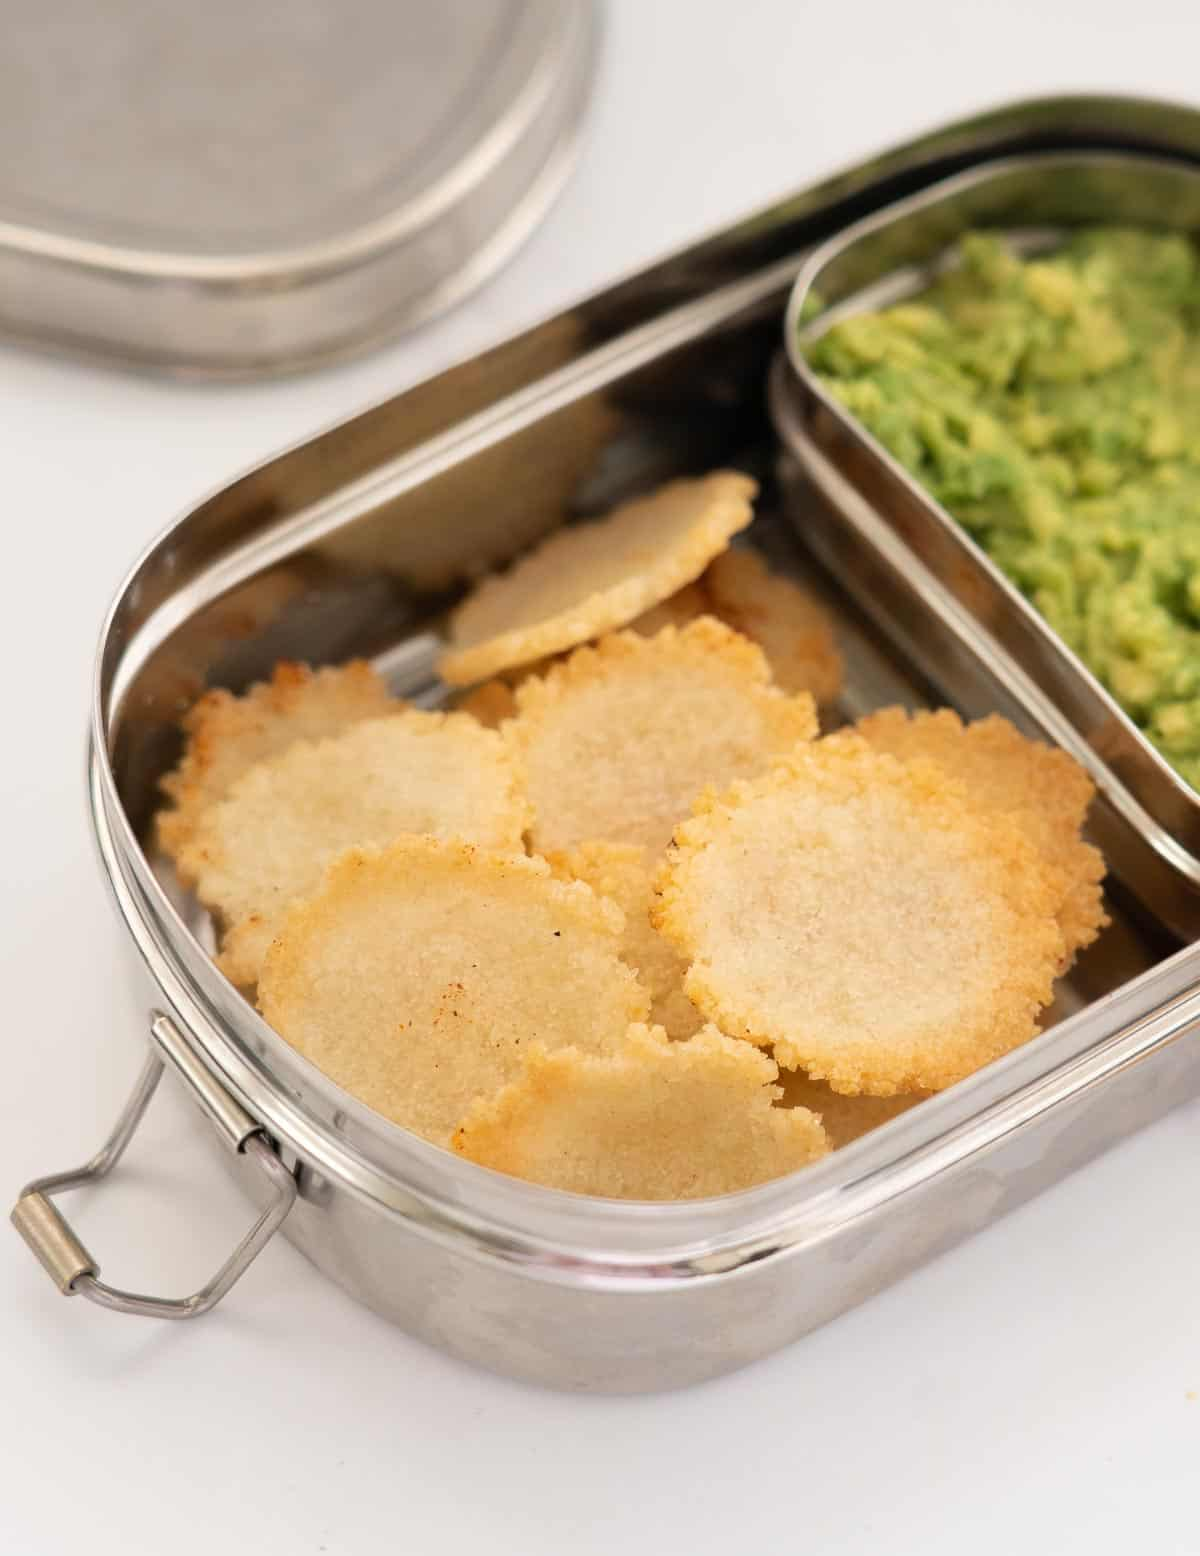 Rice crackers in a divided stainless steal lunch box with mashed avocado